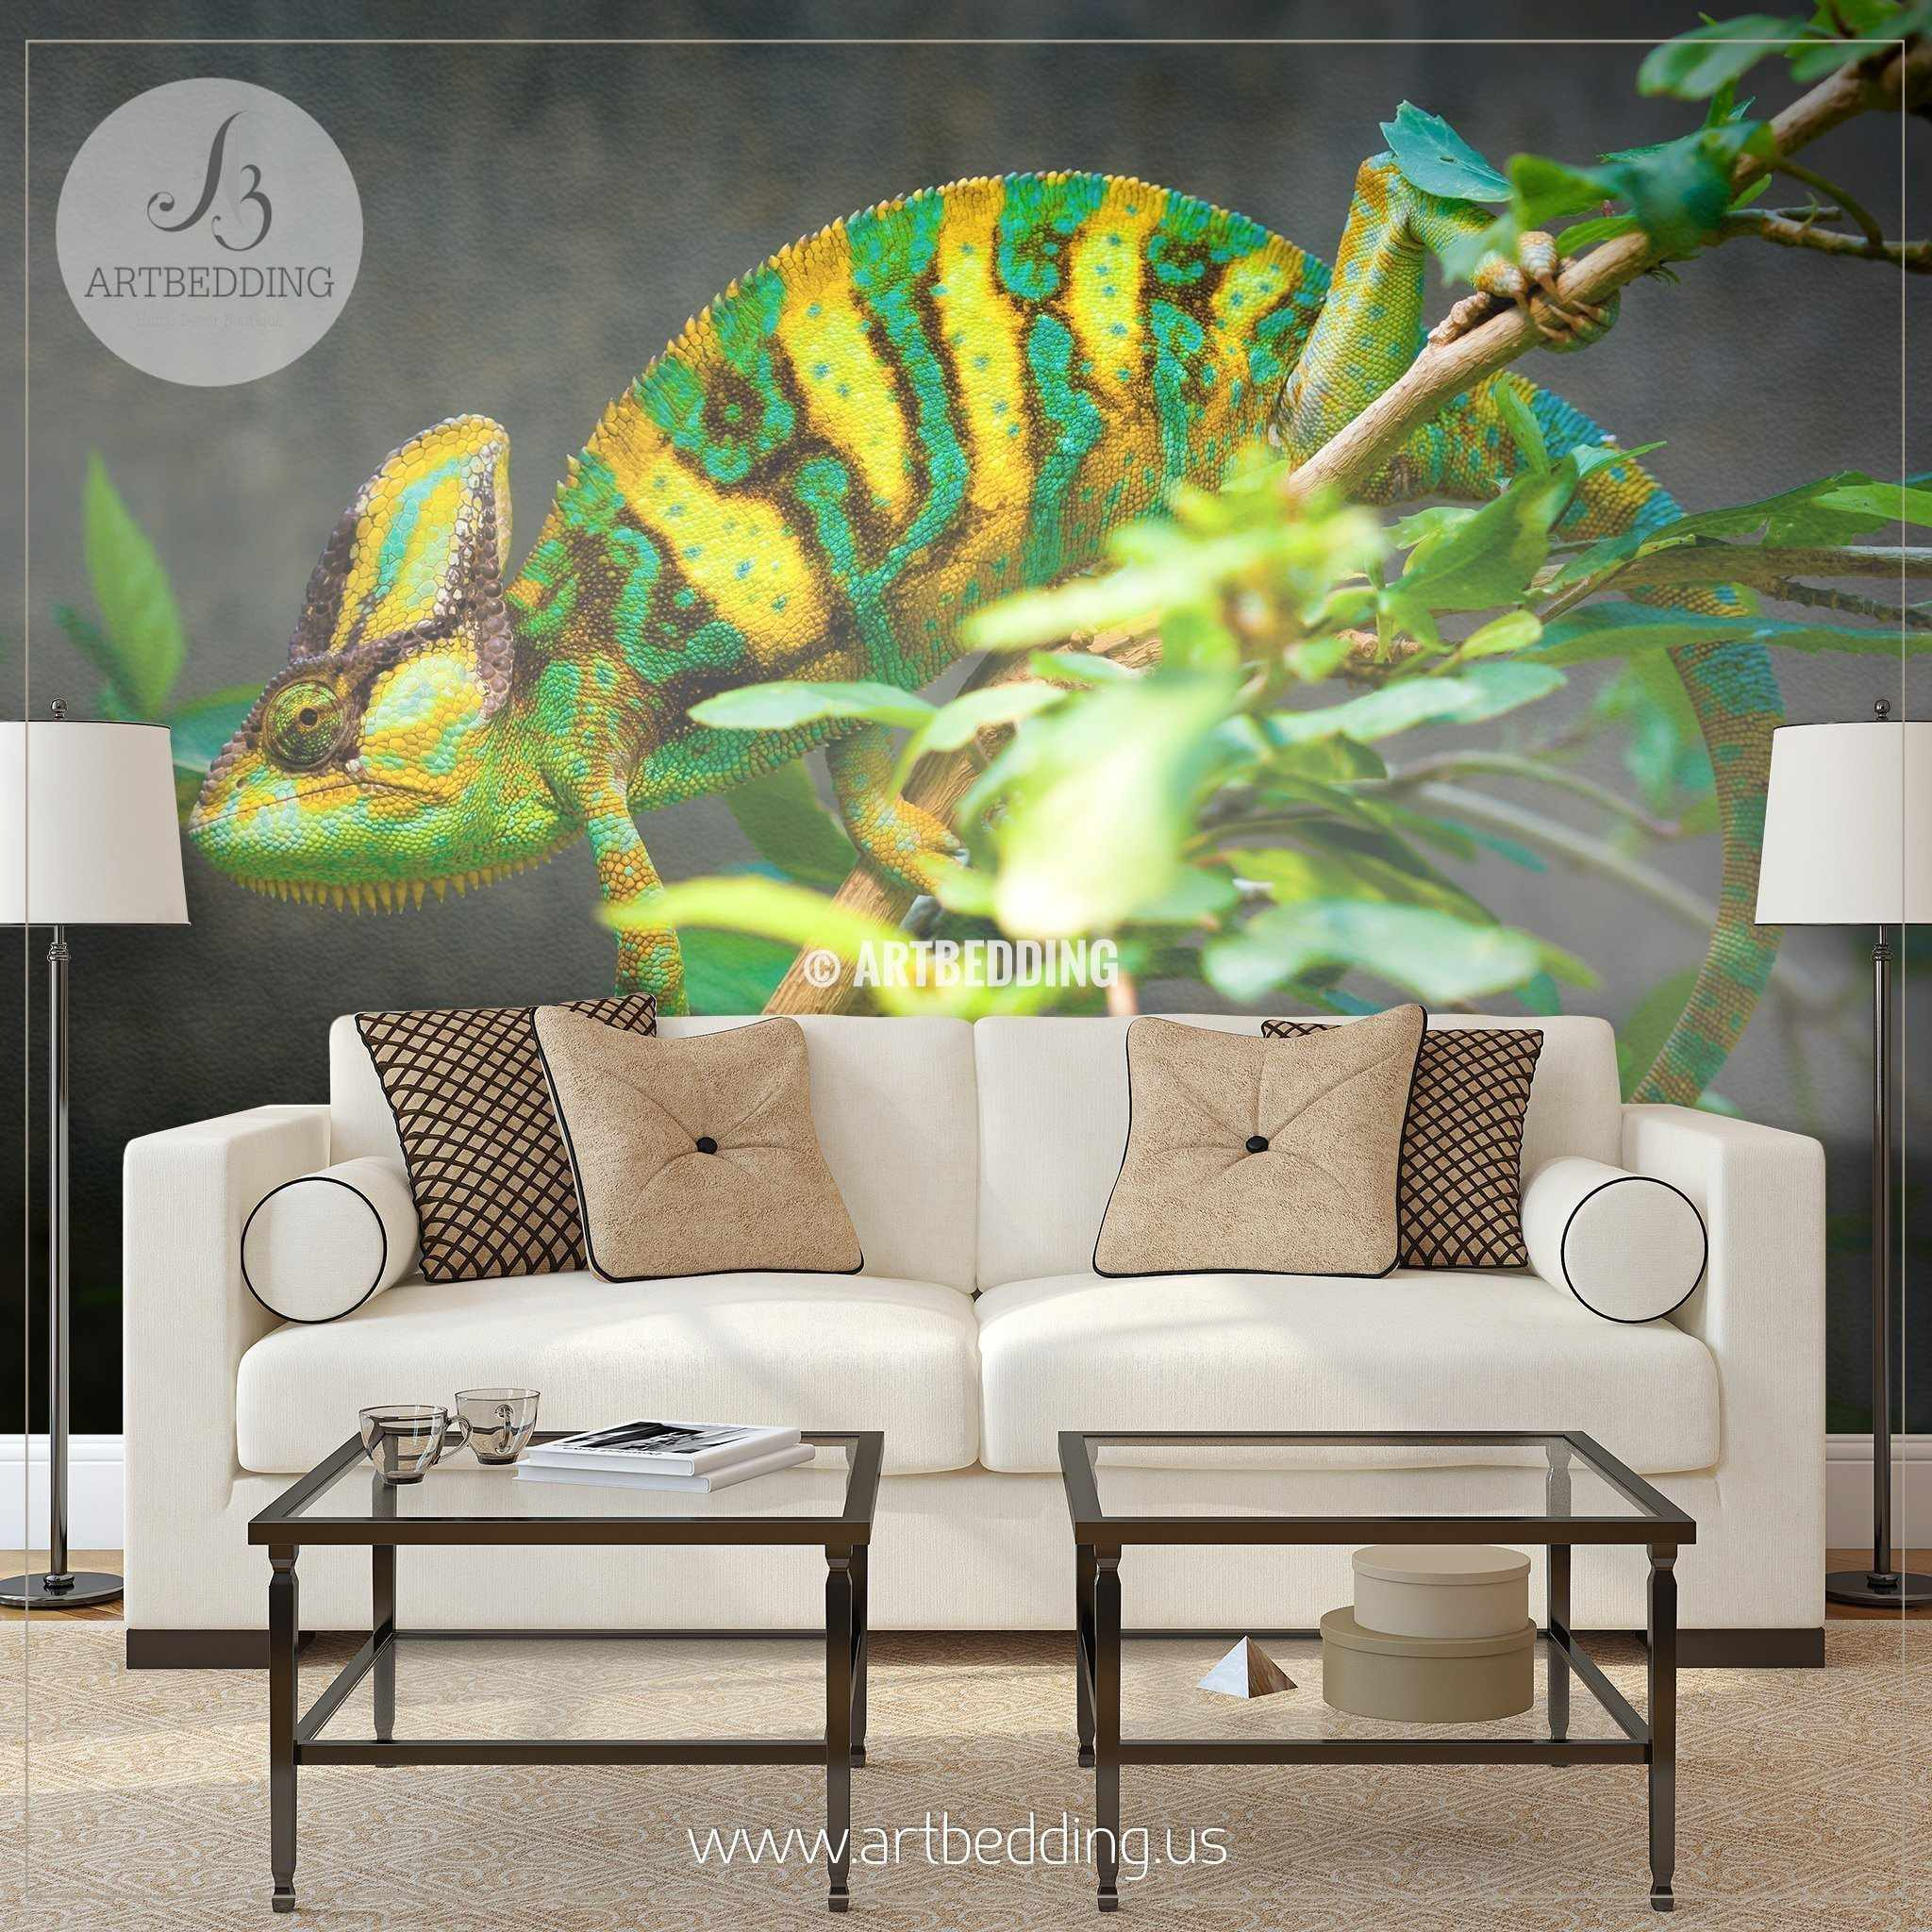 Chameleon wall mural chameleon self adhesive peel stick photo chameleon wall mural chameleon self adhesive peel stick photo mural beautiful chameleon wallpaper amipublicfo Image collections